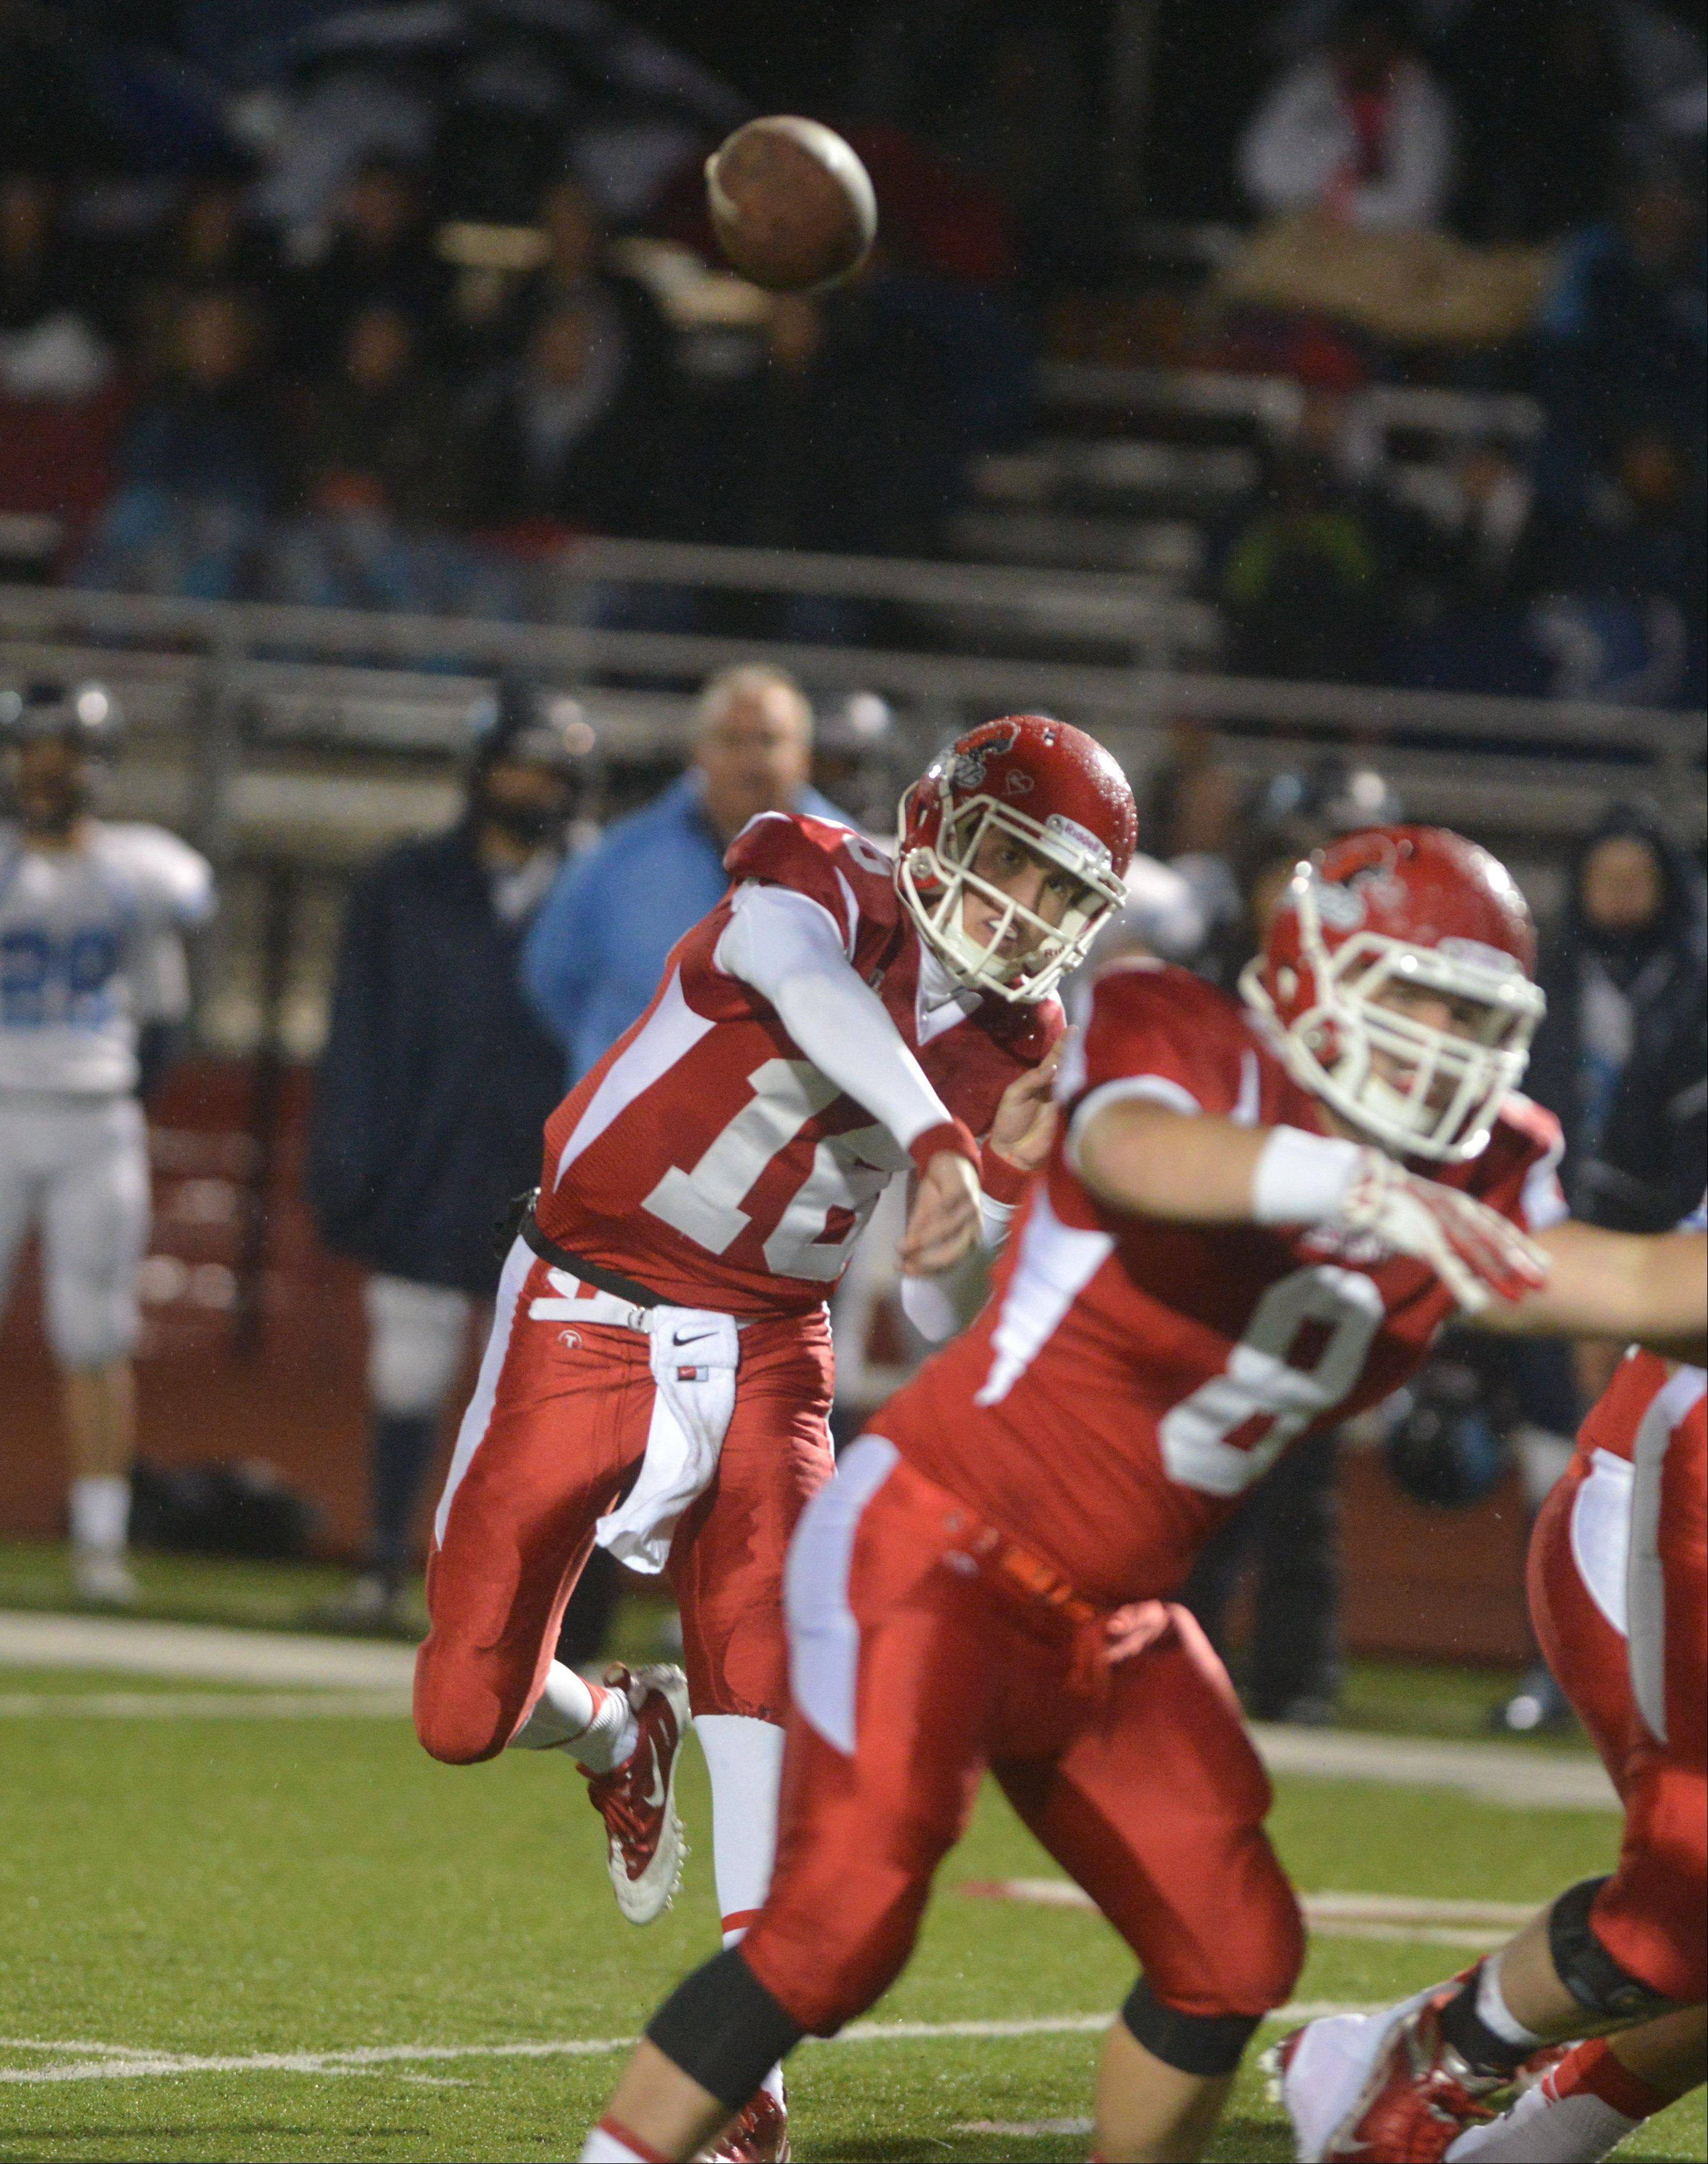 Playoffs -Round One- Photos from the Downers Grove South at Naperville Central football game on Friday, Nov. 1.